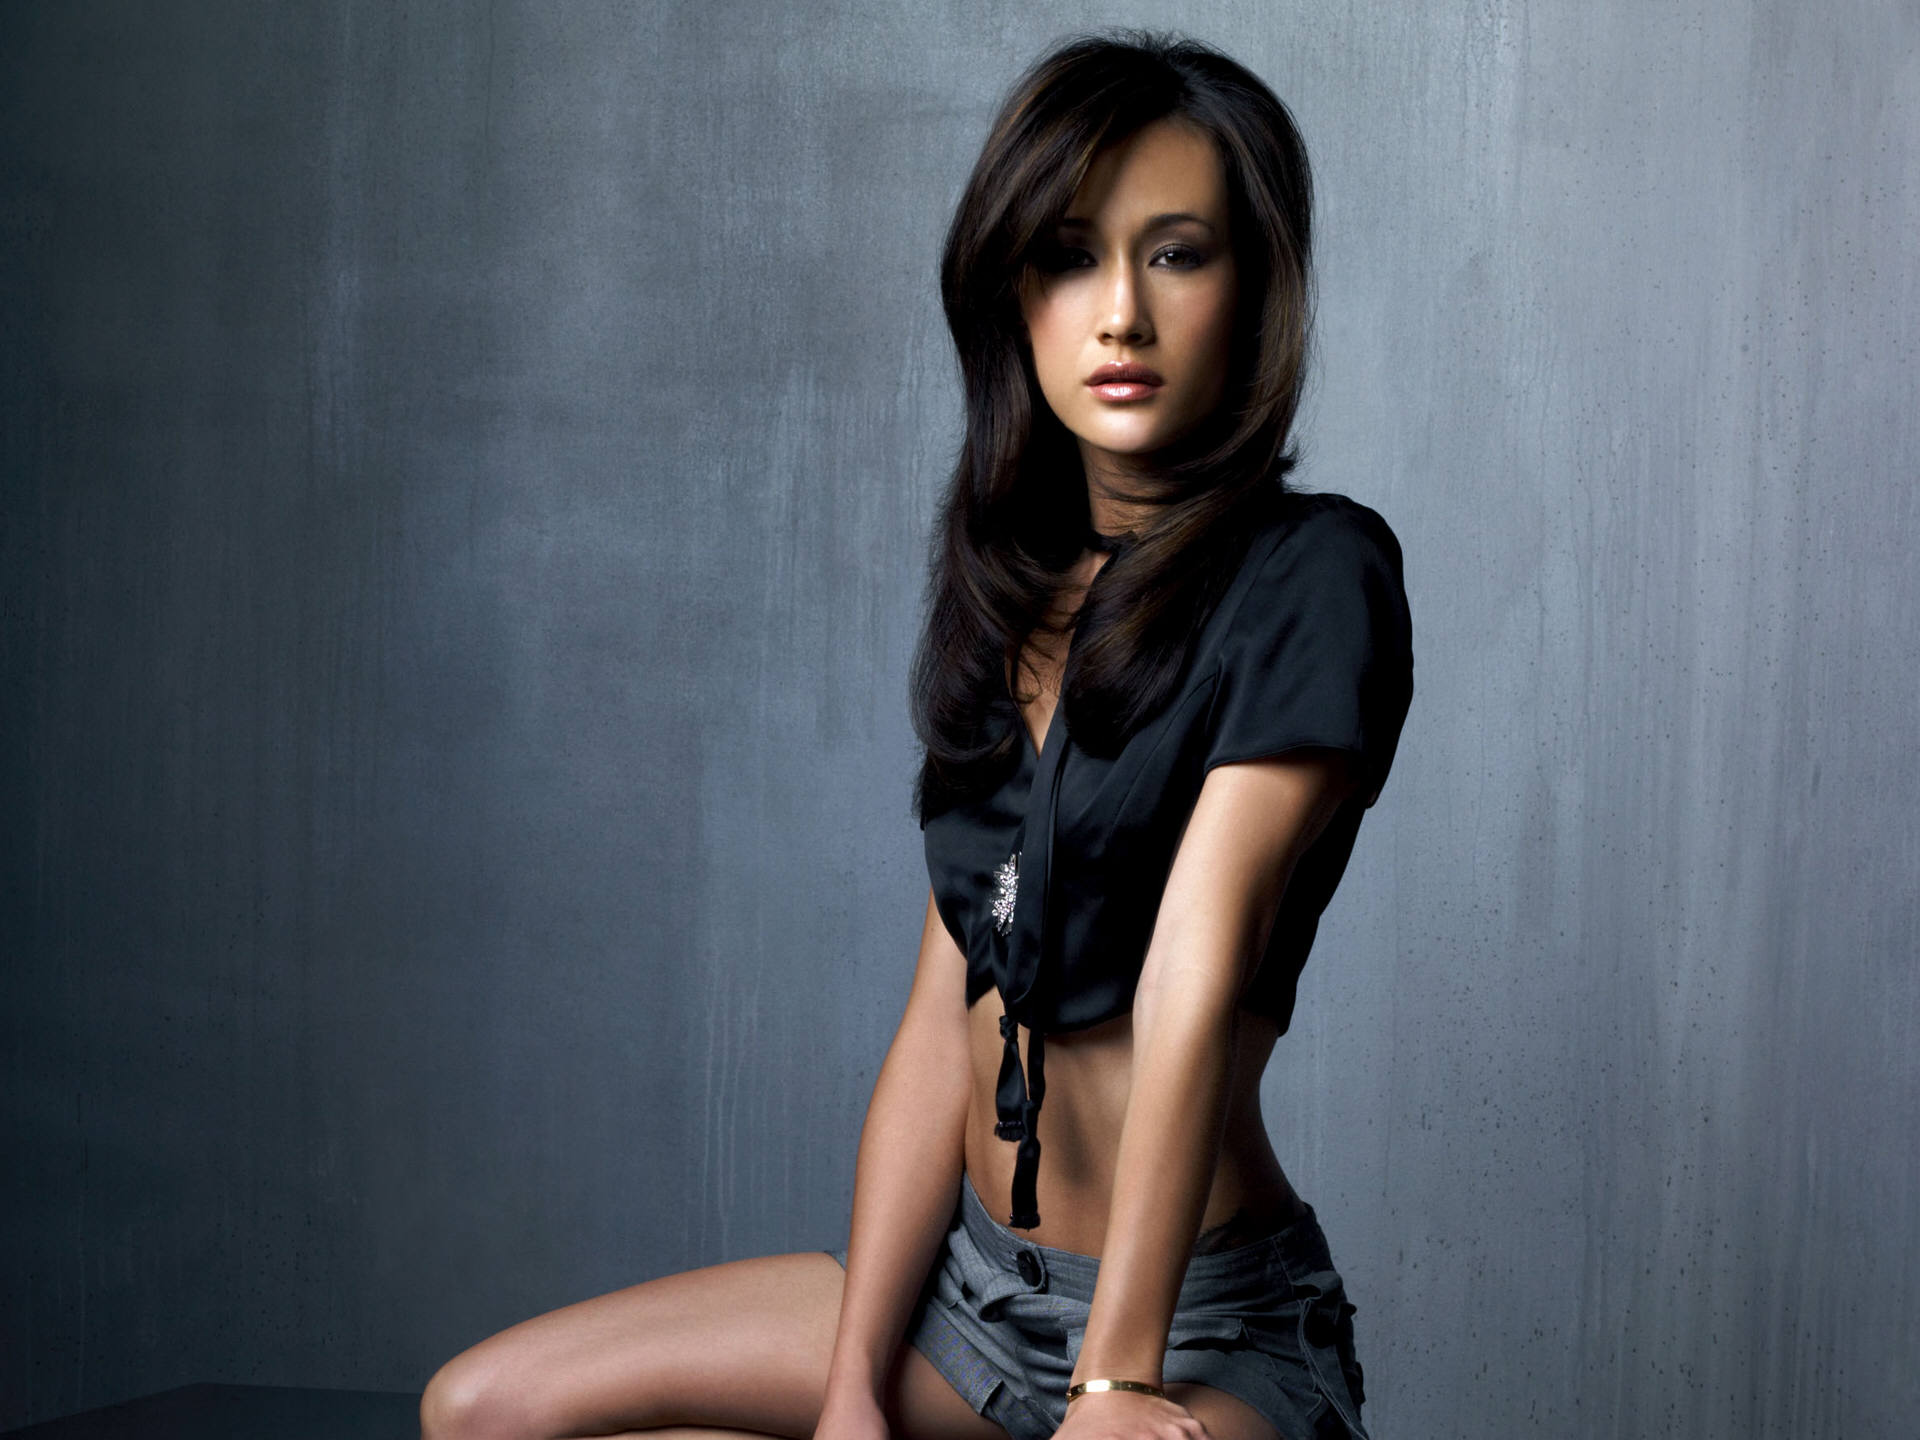 1920x1440 - Maggie Q Wallpapers 9